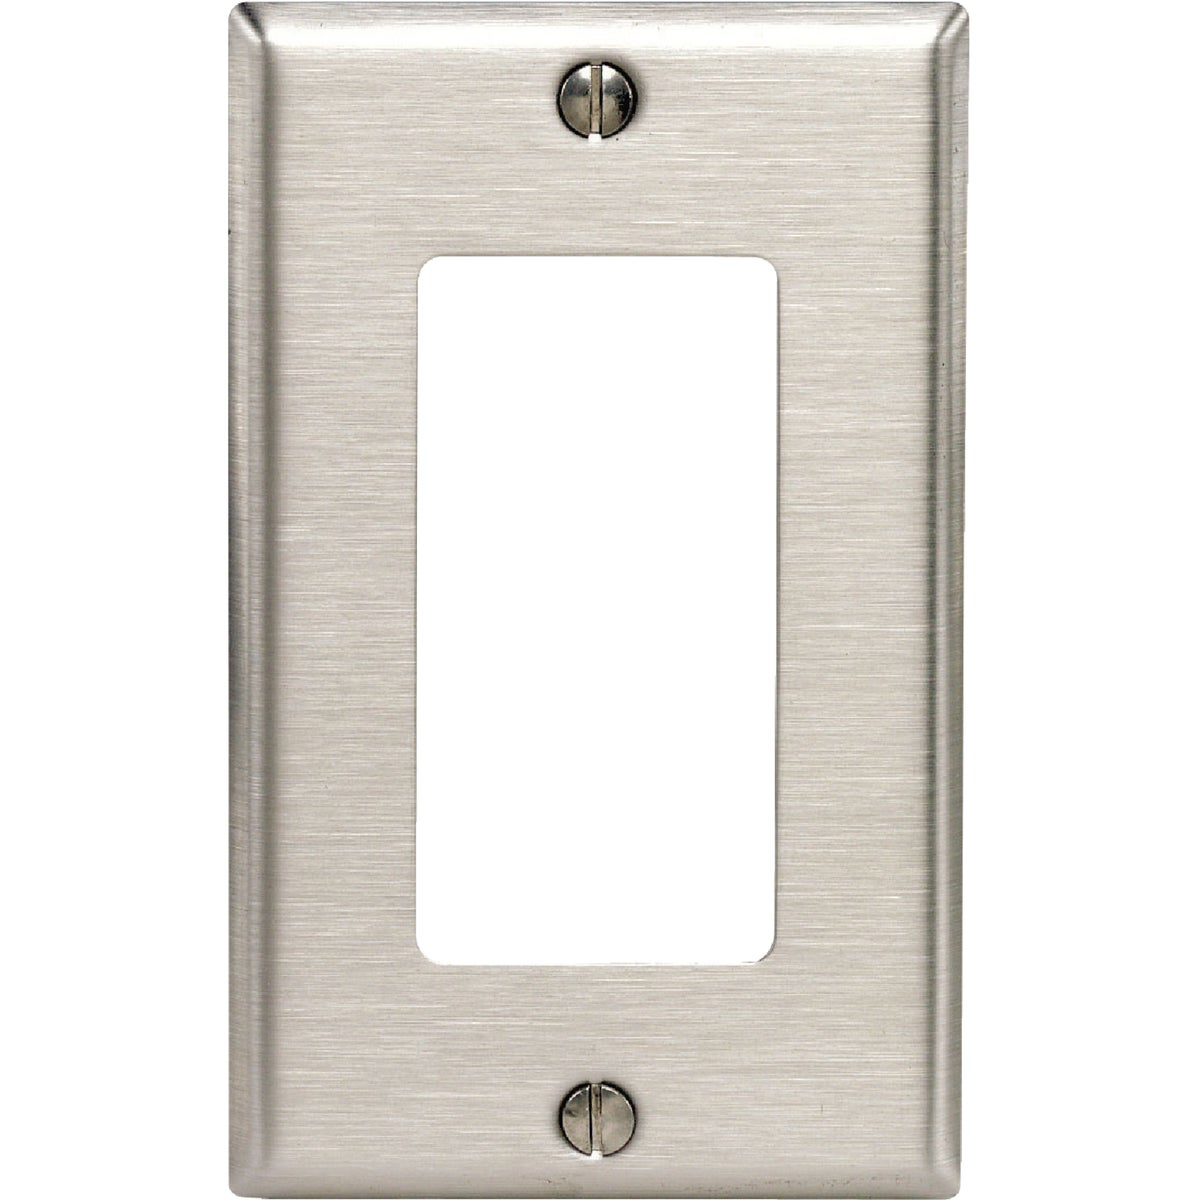 SS GFI WALL PLATE - 8440140 by Leviton Mfg Co